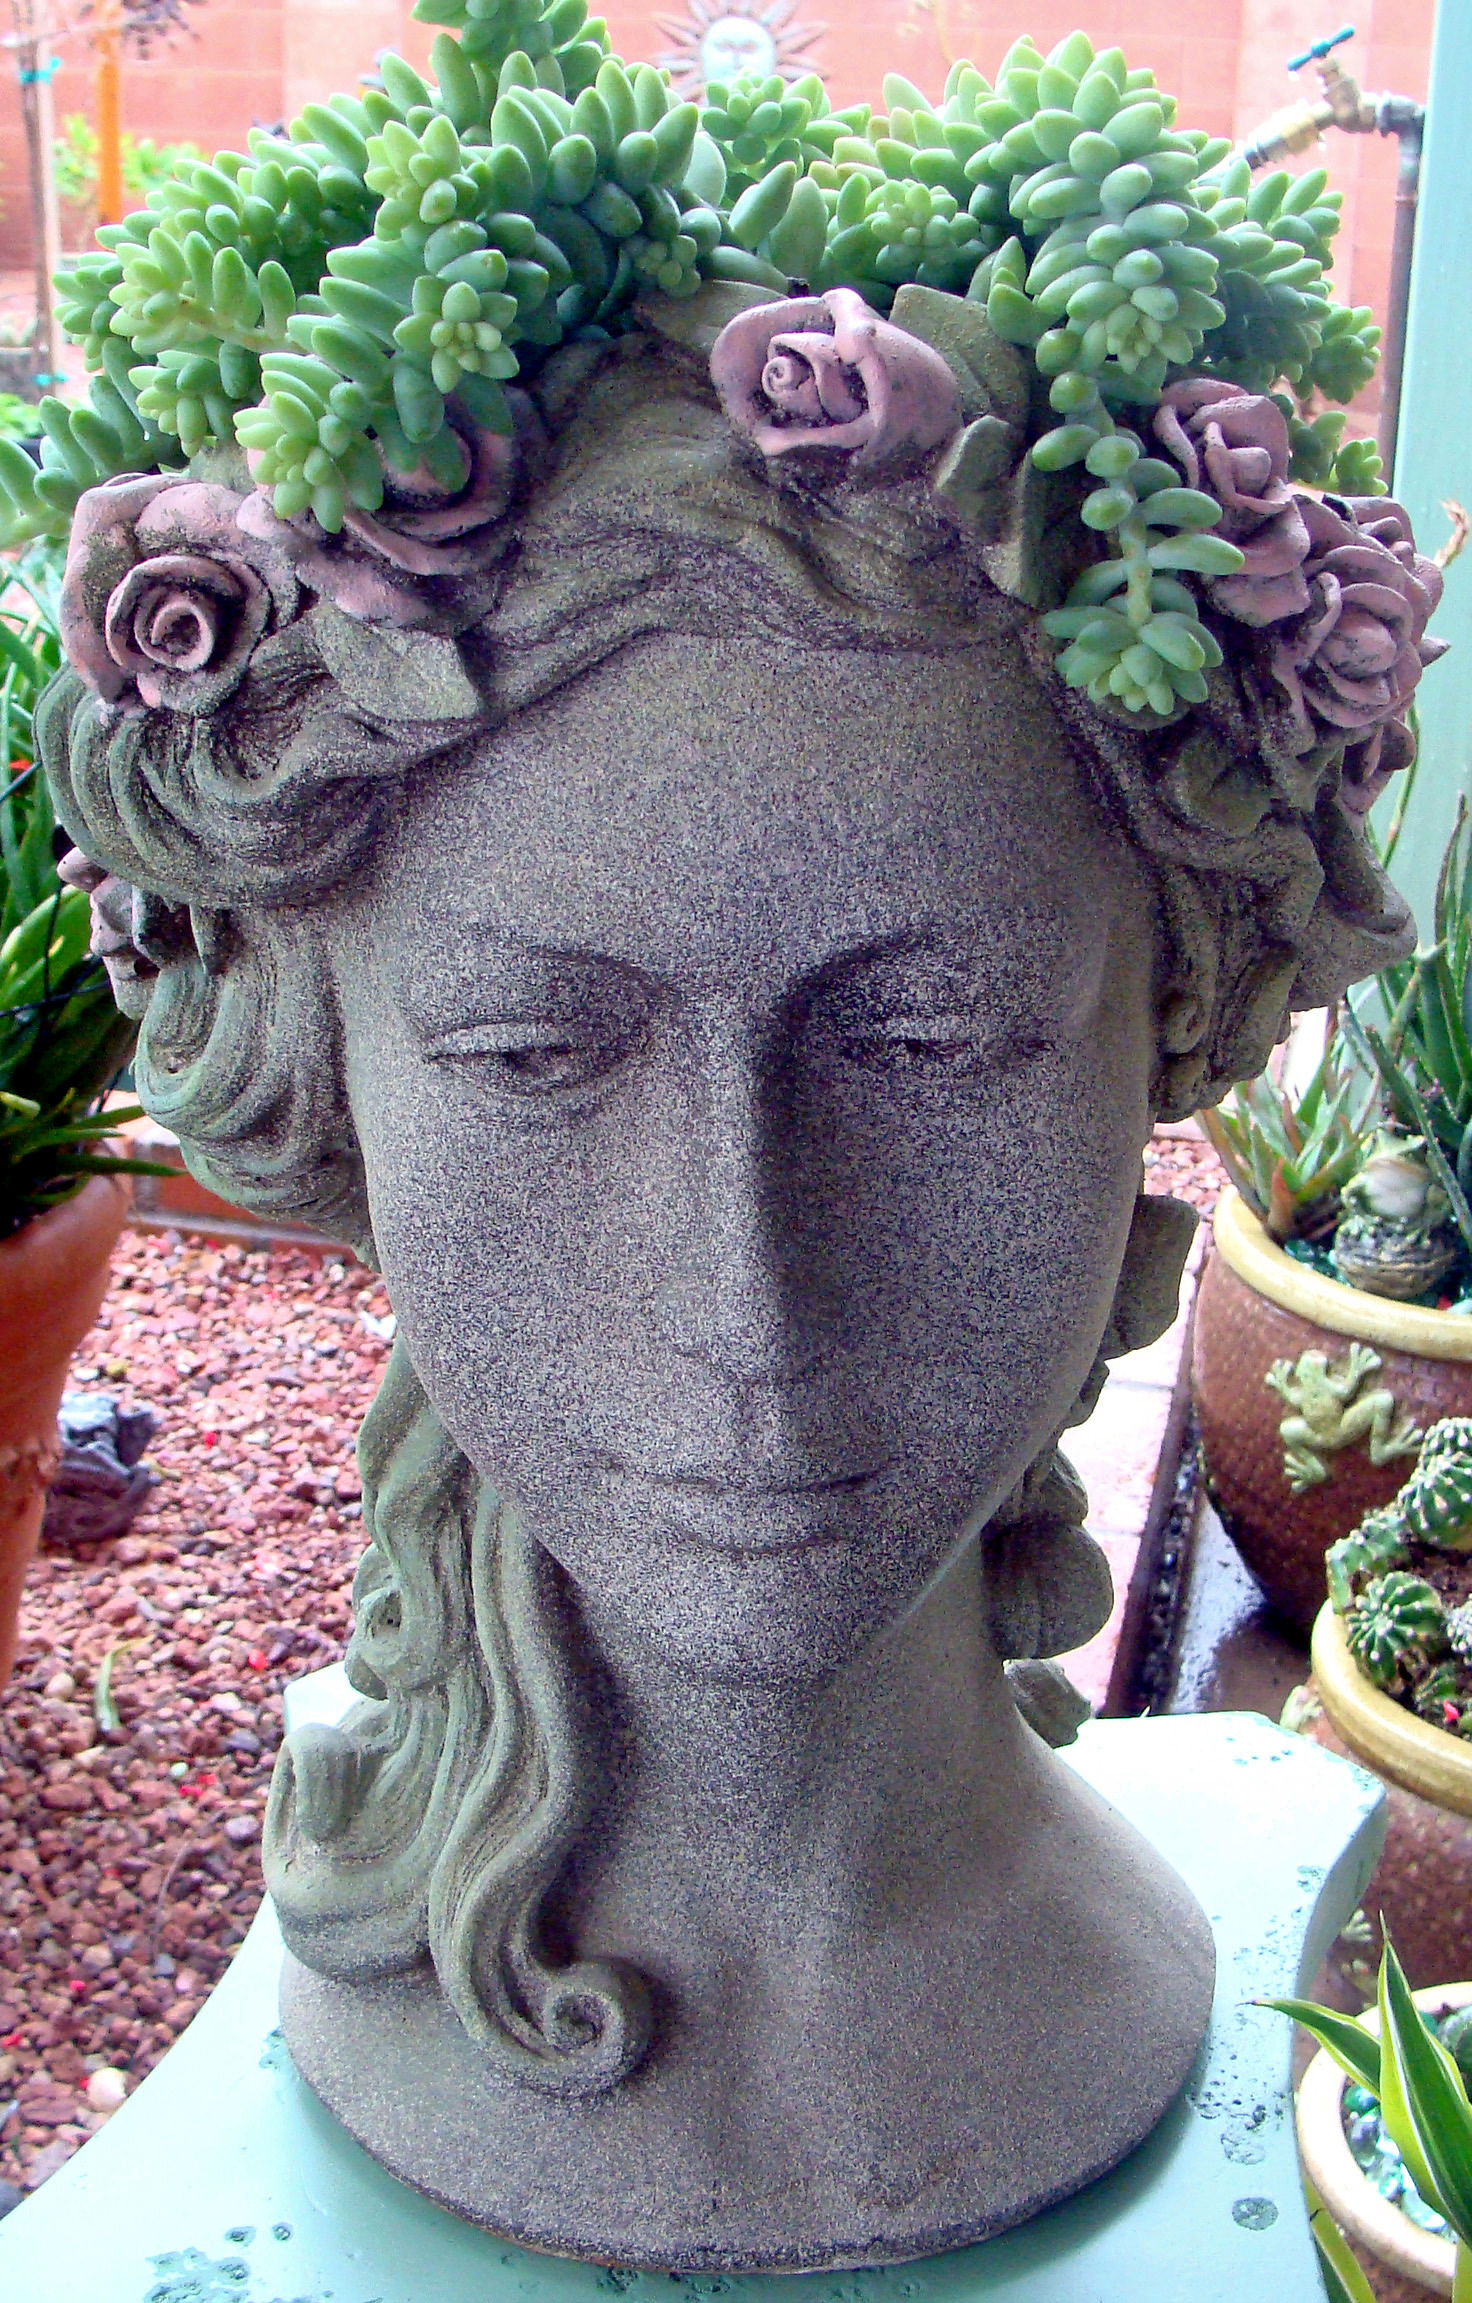 Planter Heads Dazzling Head Planters Will Add Some Fun To Your Garden